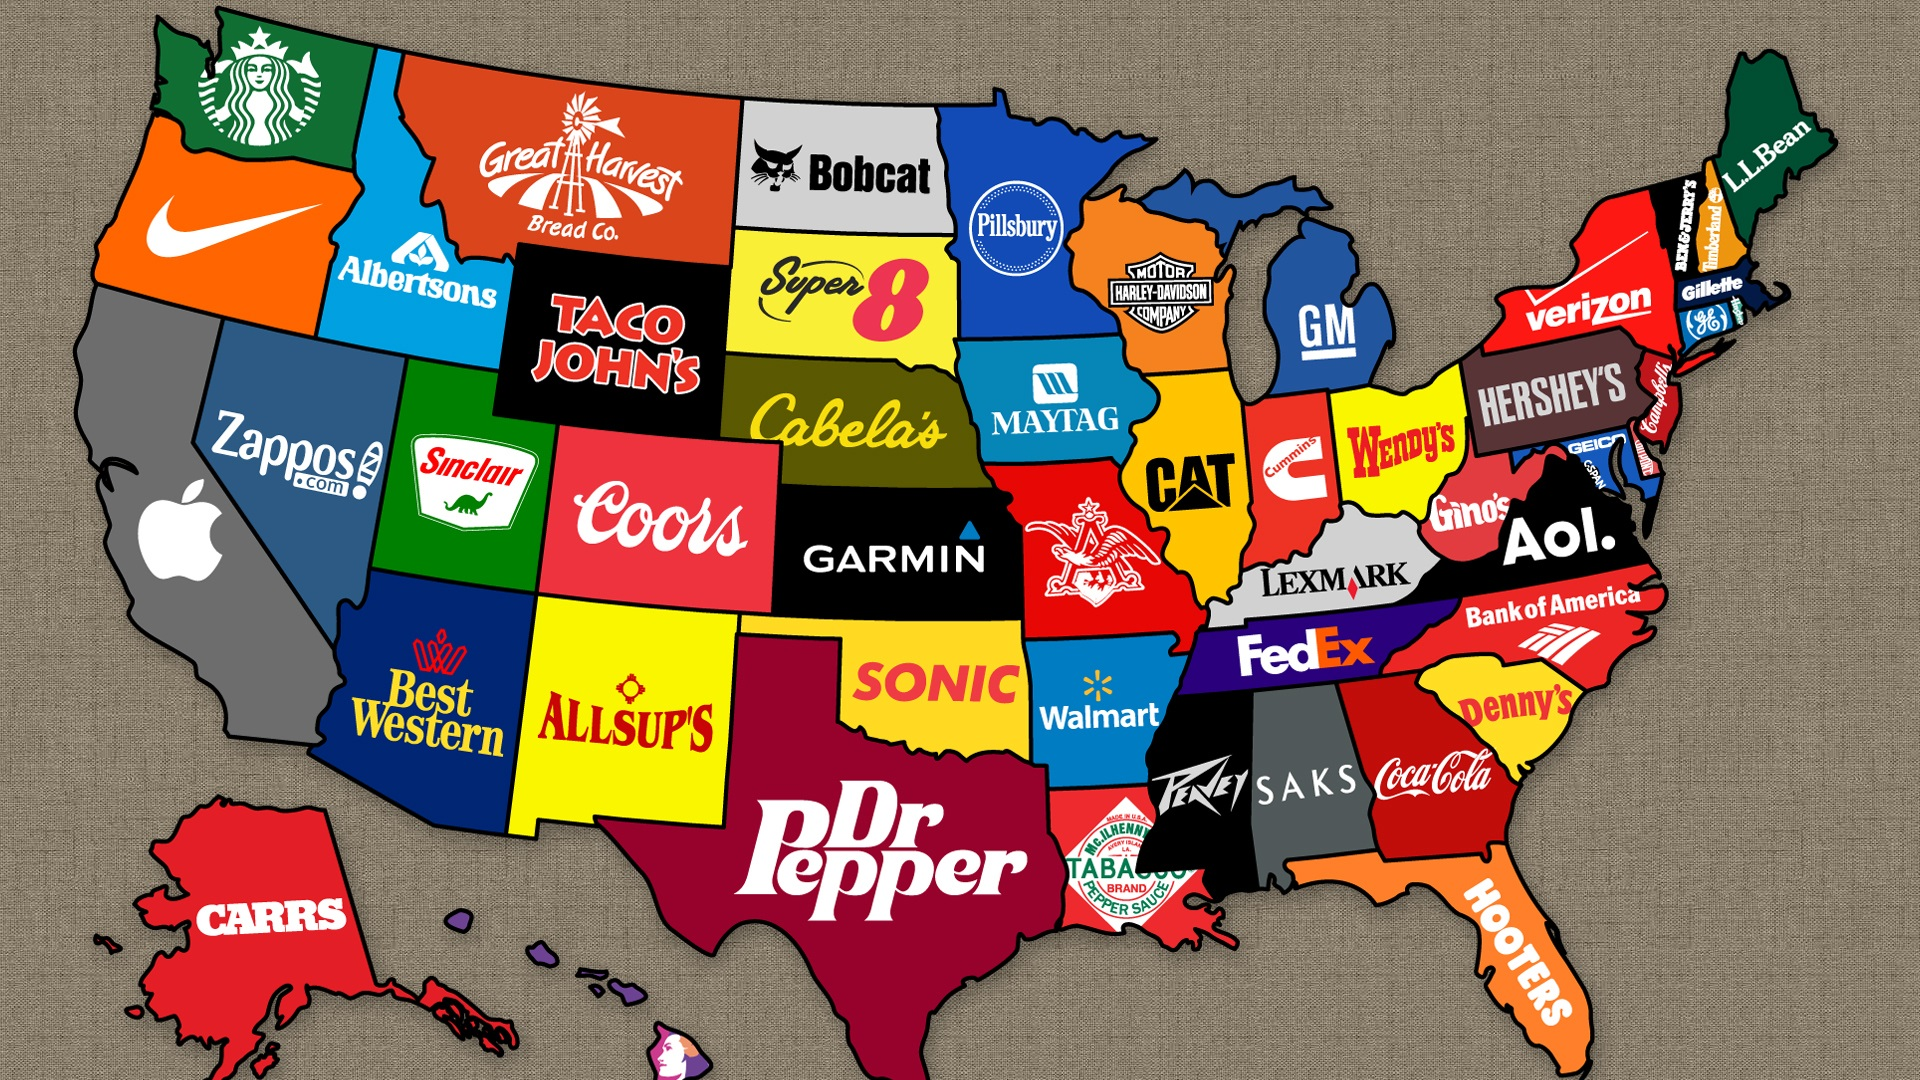 American brand on the map wallpaper 1920x1080 full hd for Top wallpaper brands